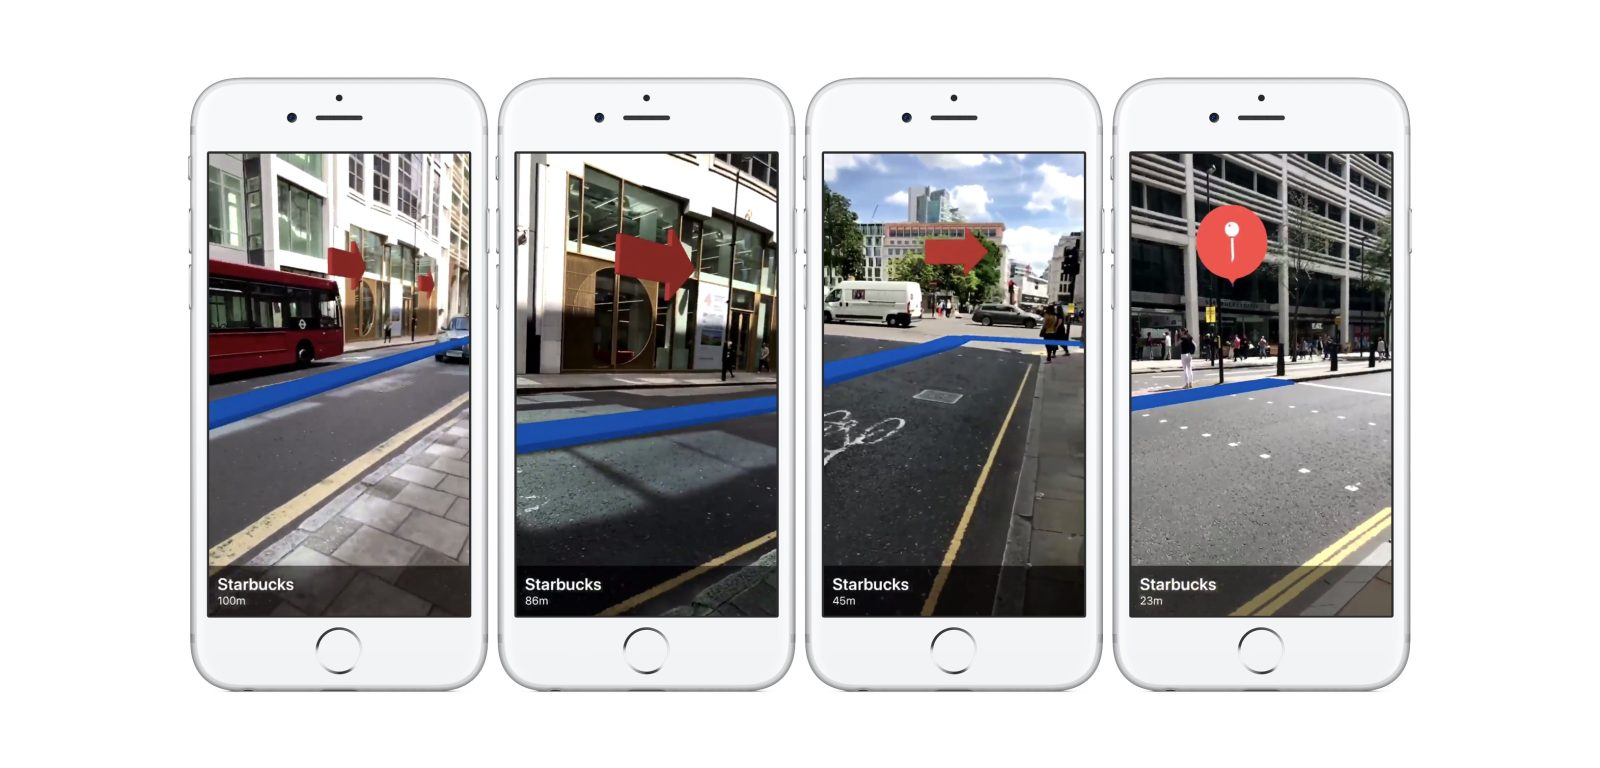 iOS 11 ARKit demo showcases real world navigation and Maps POI - 9to5Mac